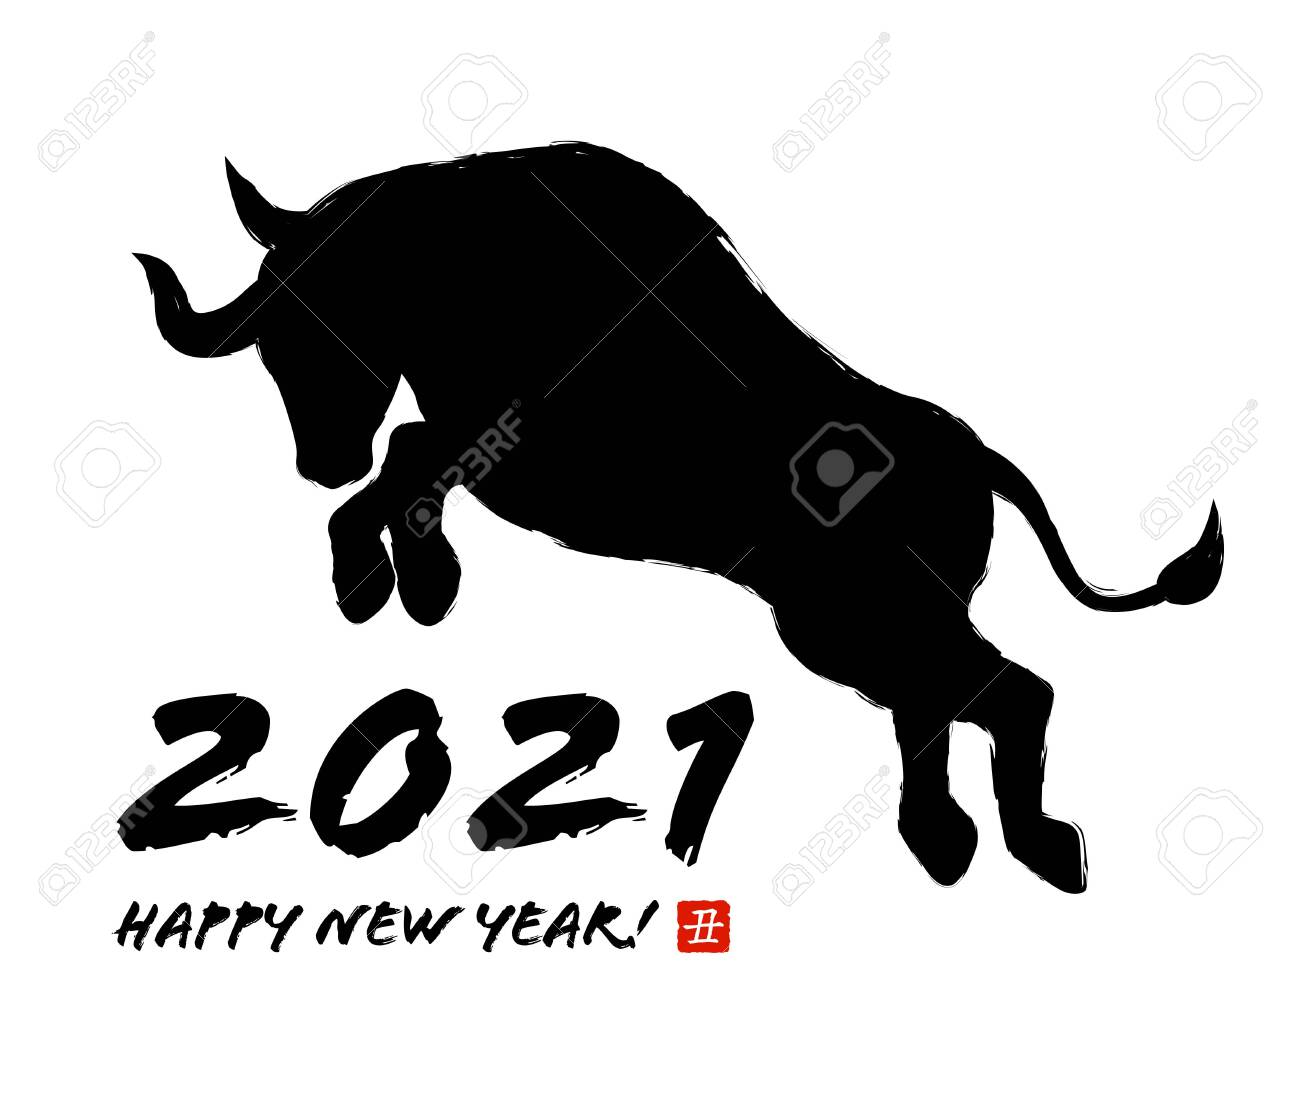 Bull silhouette for New Year's card material - 156618556